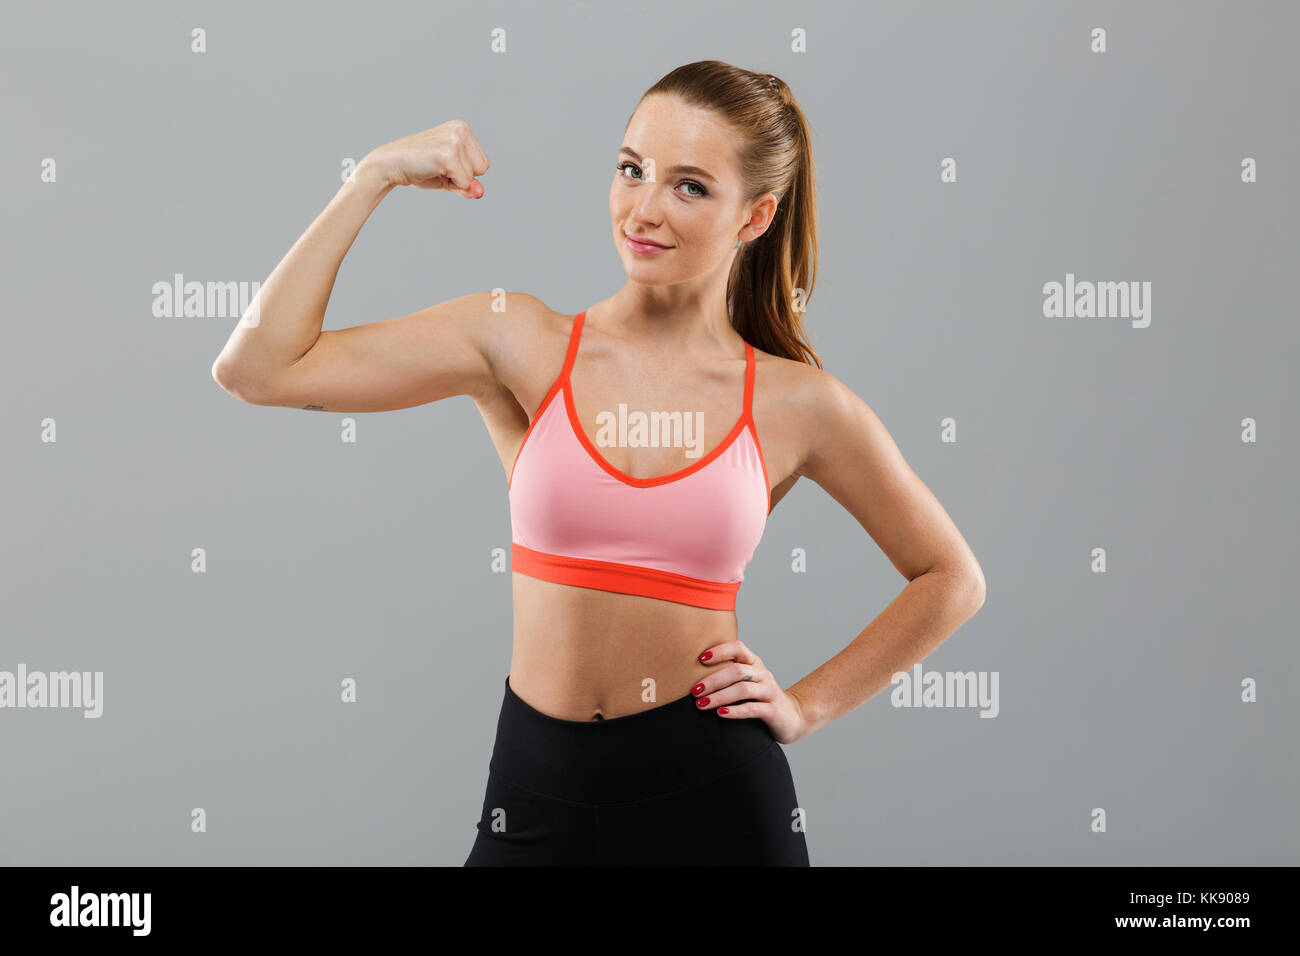 Portrait Of A Smiling Confident Sports Girl Flexing Biceps And Looking At Camera Isolated Over Gray Background